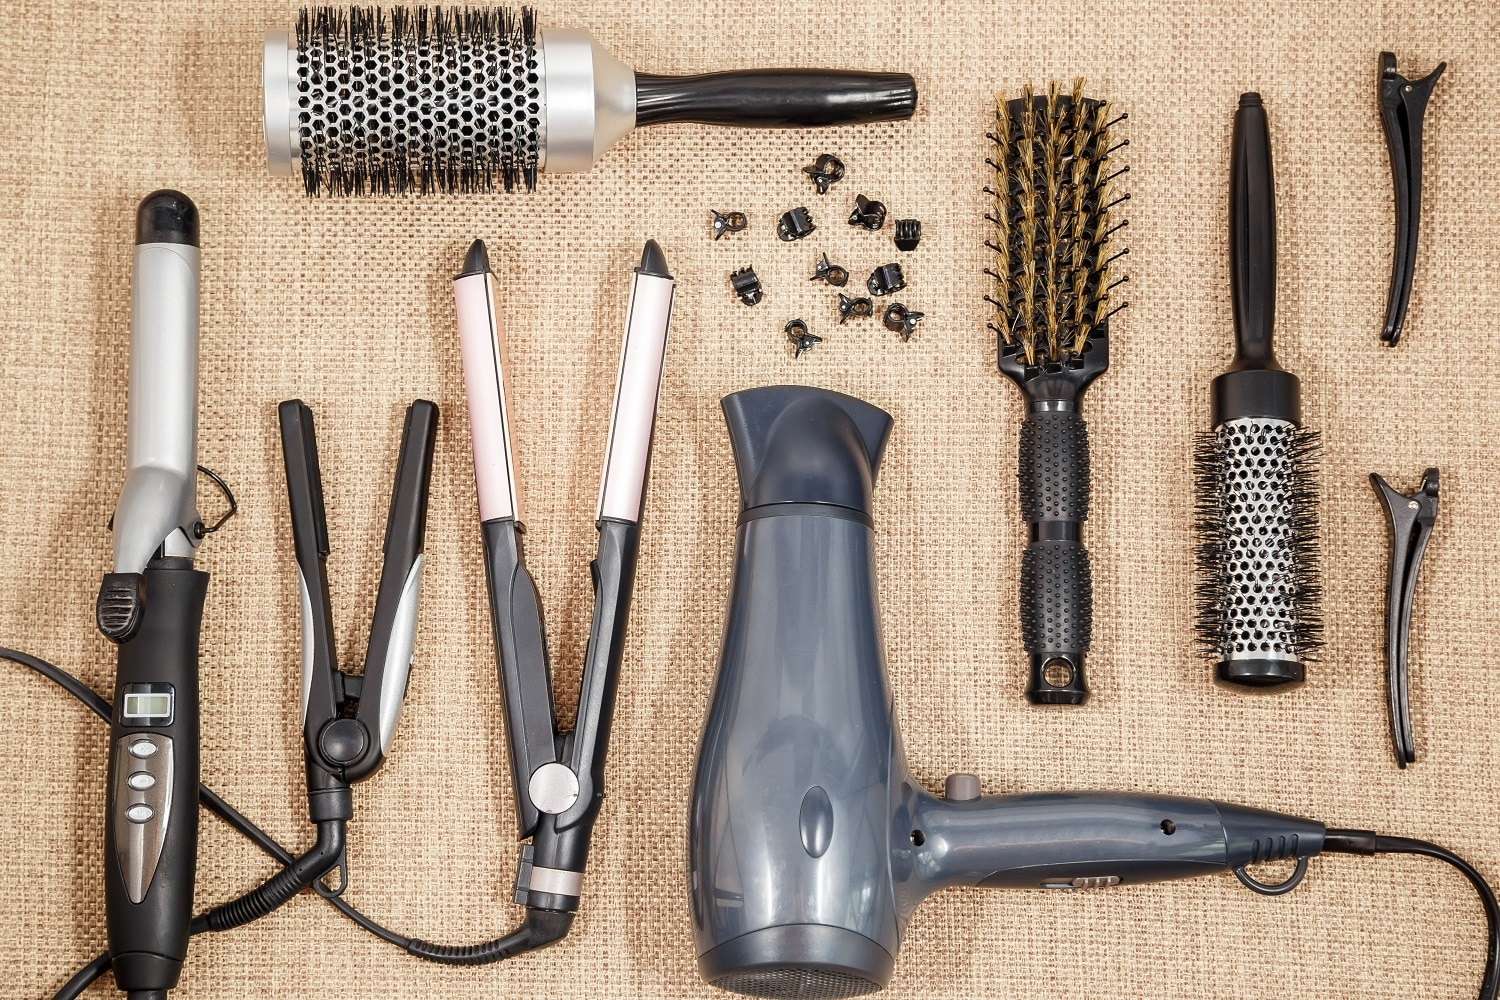 Professional equipment hairdressing - beauty salon and a hairdresser top view.